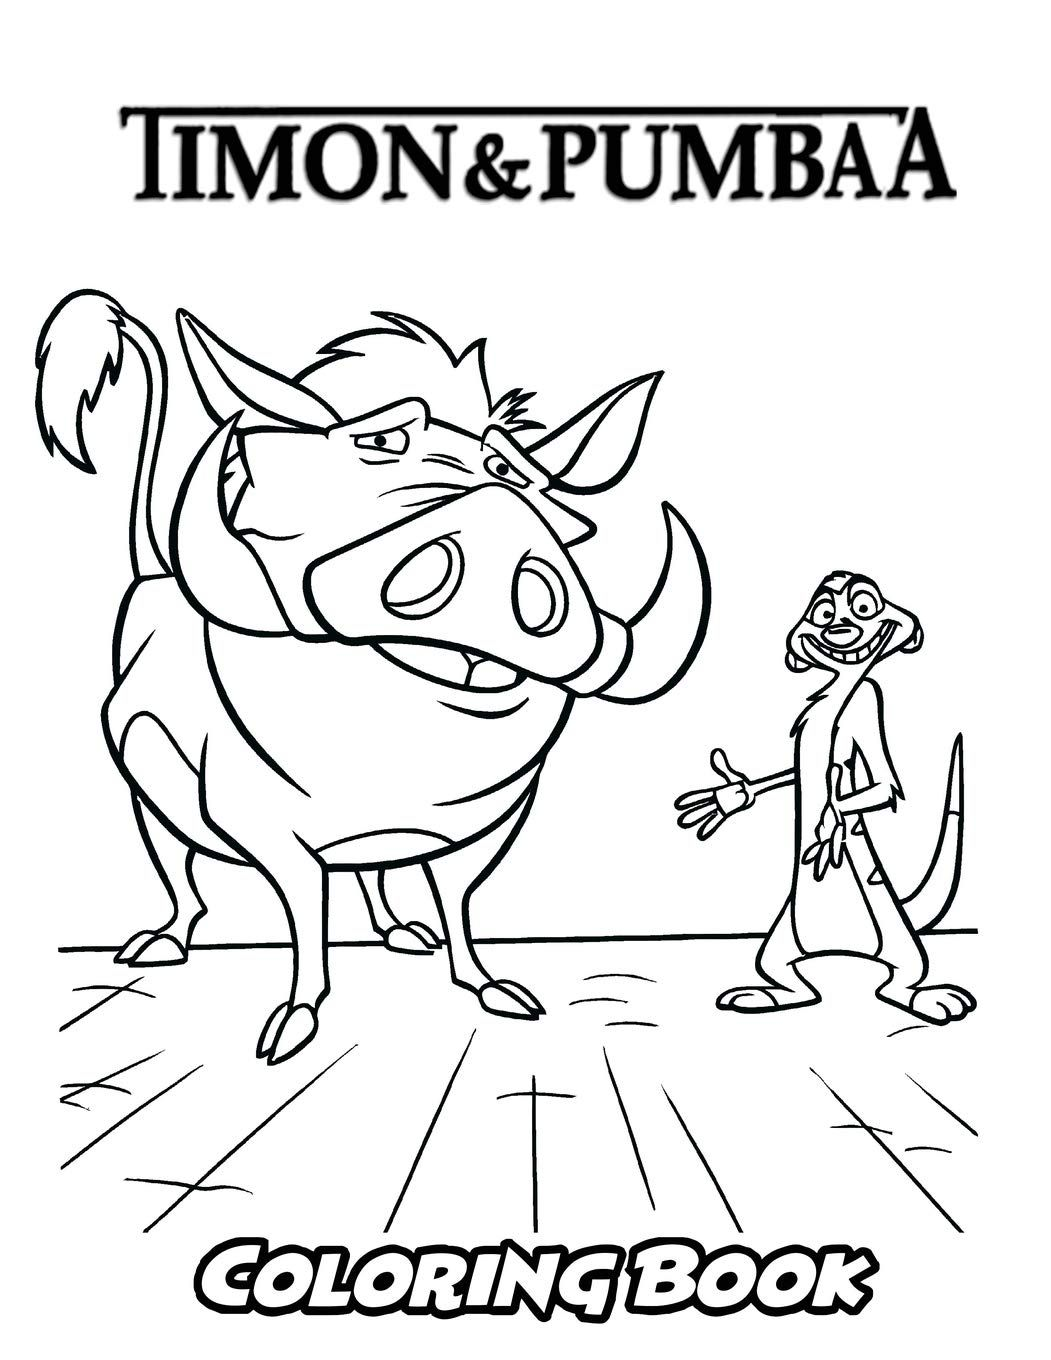 Large Coloring Books For Adults Coloring Pages Timon And Pumba